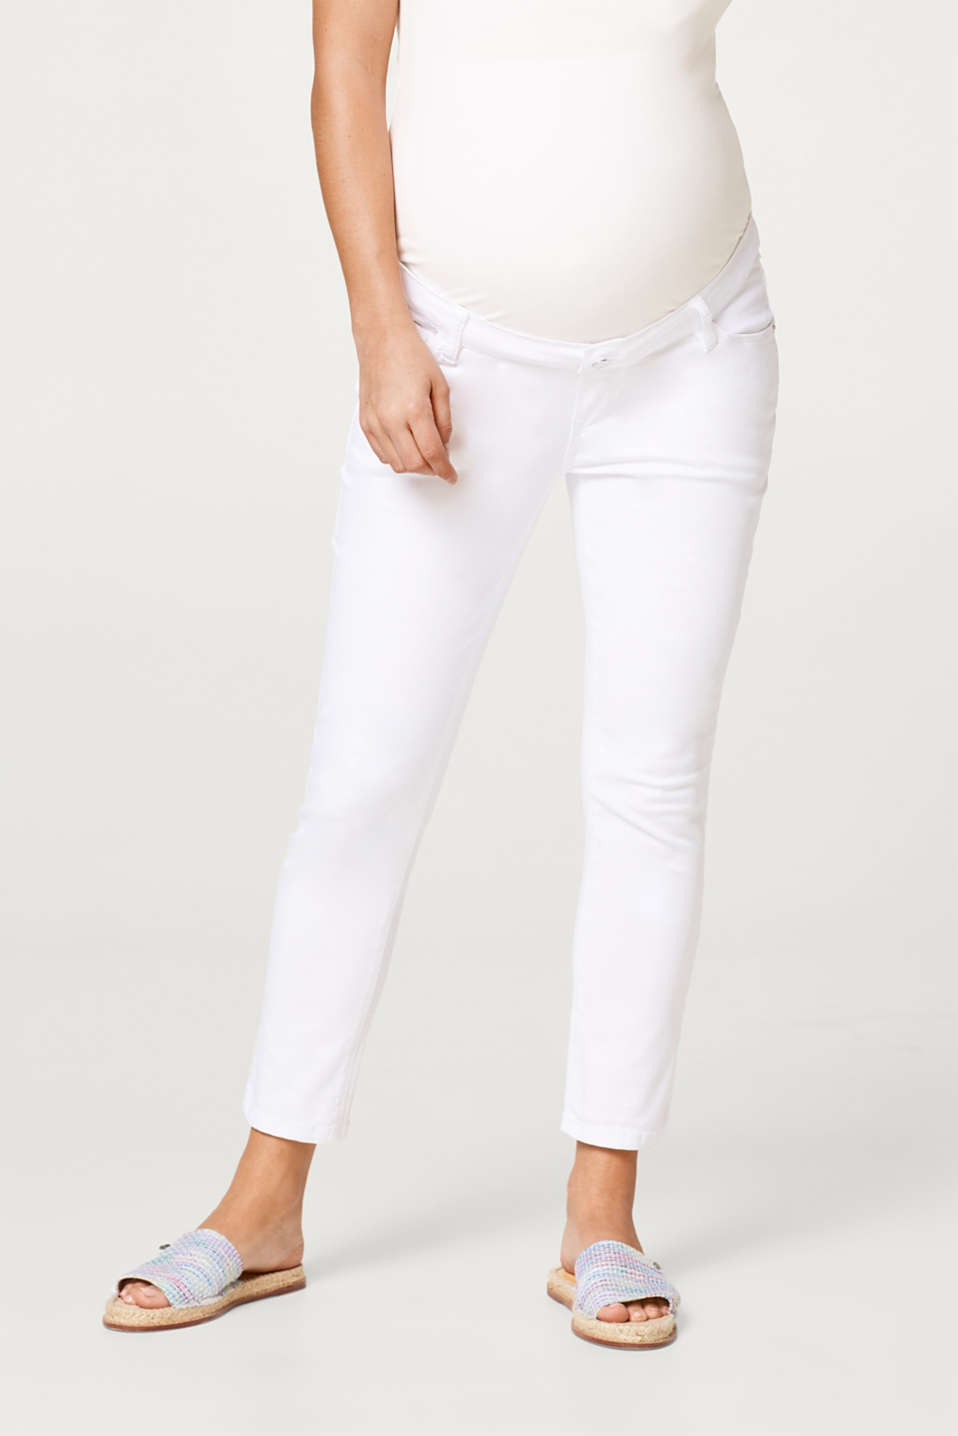 Esprit - 7/8 trousers with an over-bump waistband